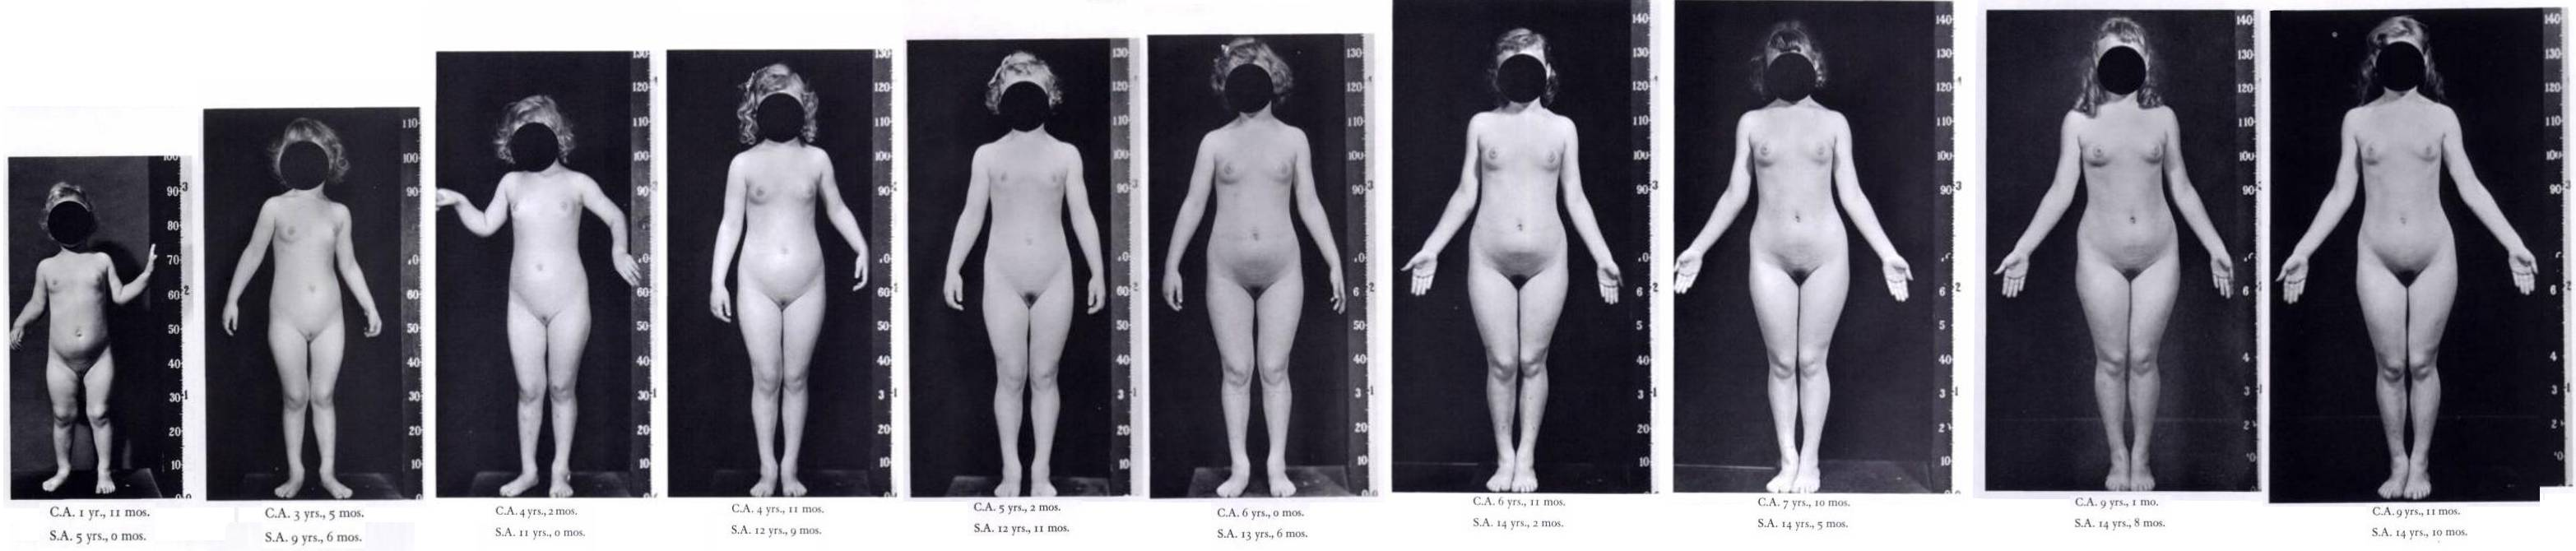 nude photos of female stages of puberty